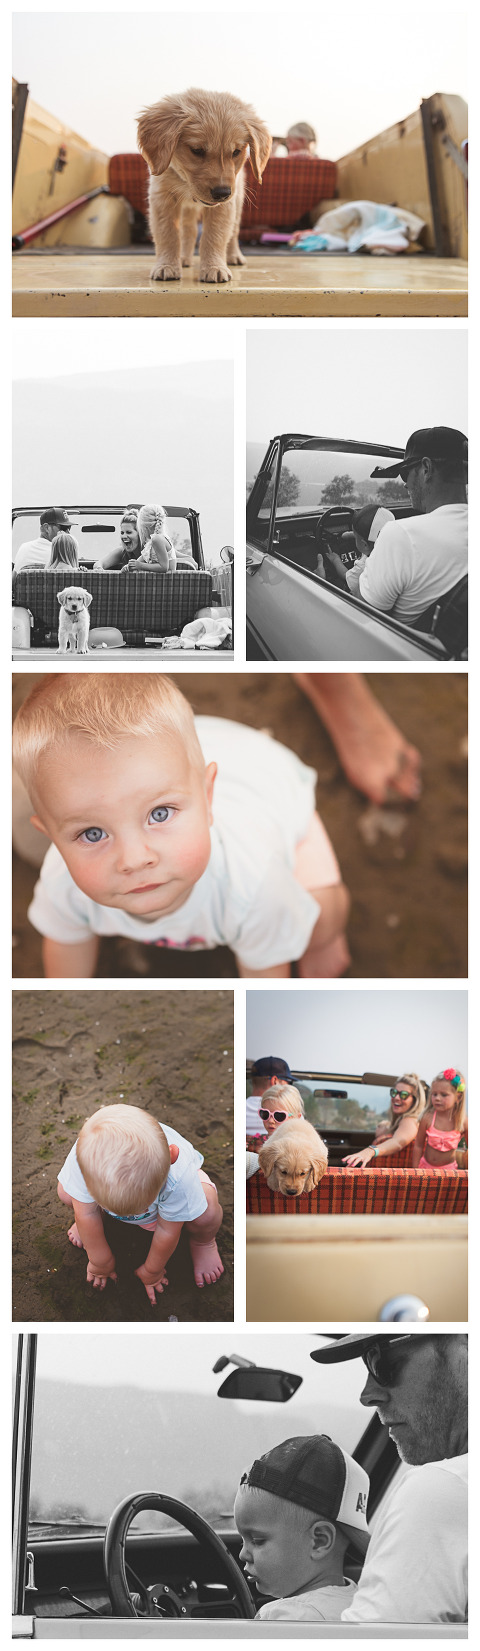 beach session with a scout, puppy, kids in the sand, Olson Family in Sunland, WA, lifestyle family session by Hailey Haberman